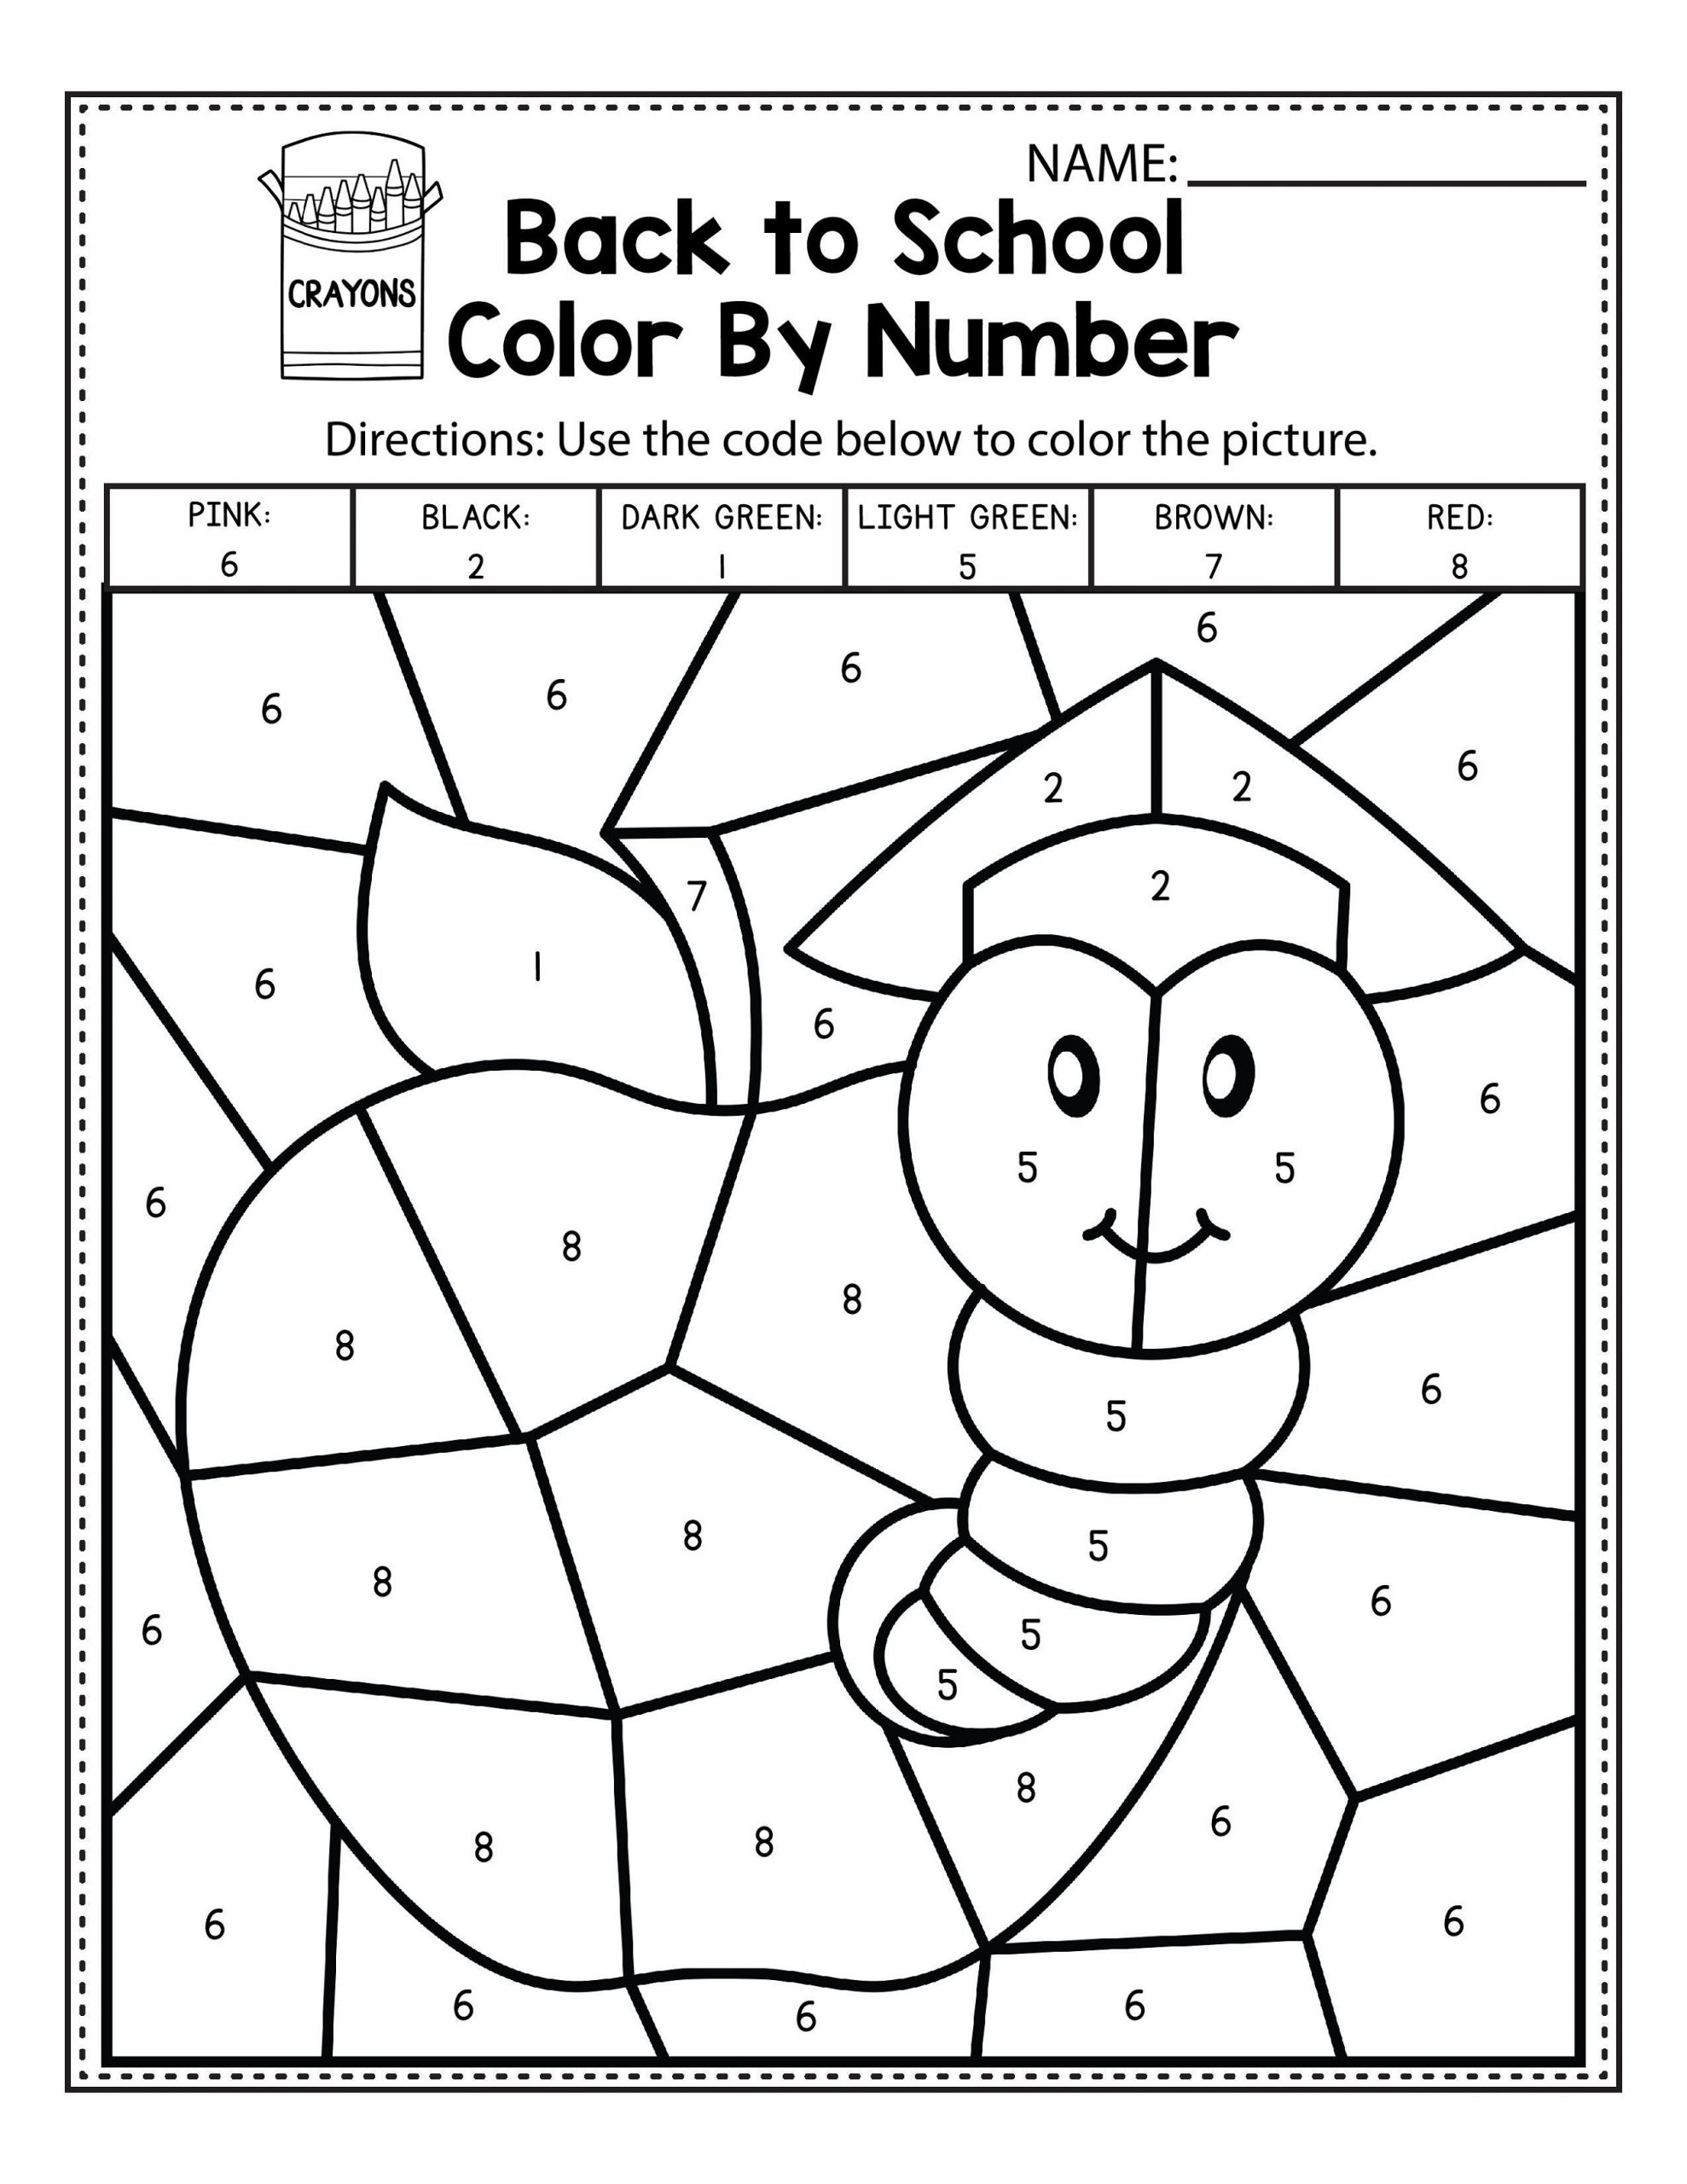 Easy Color By Number Worksheets For Kindergarten